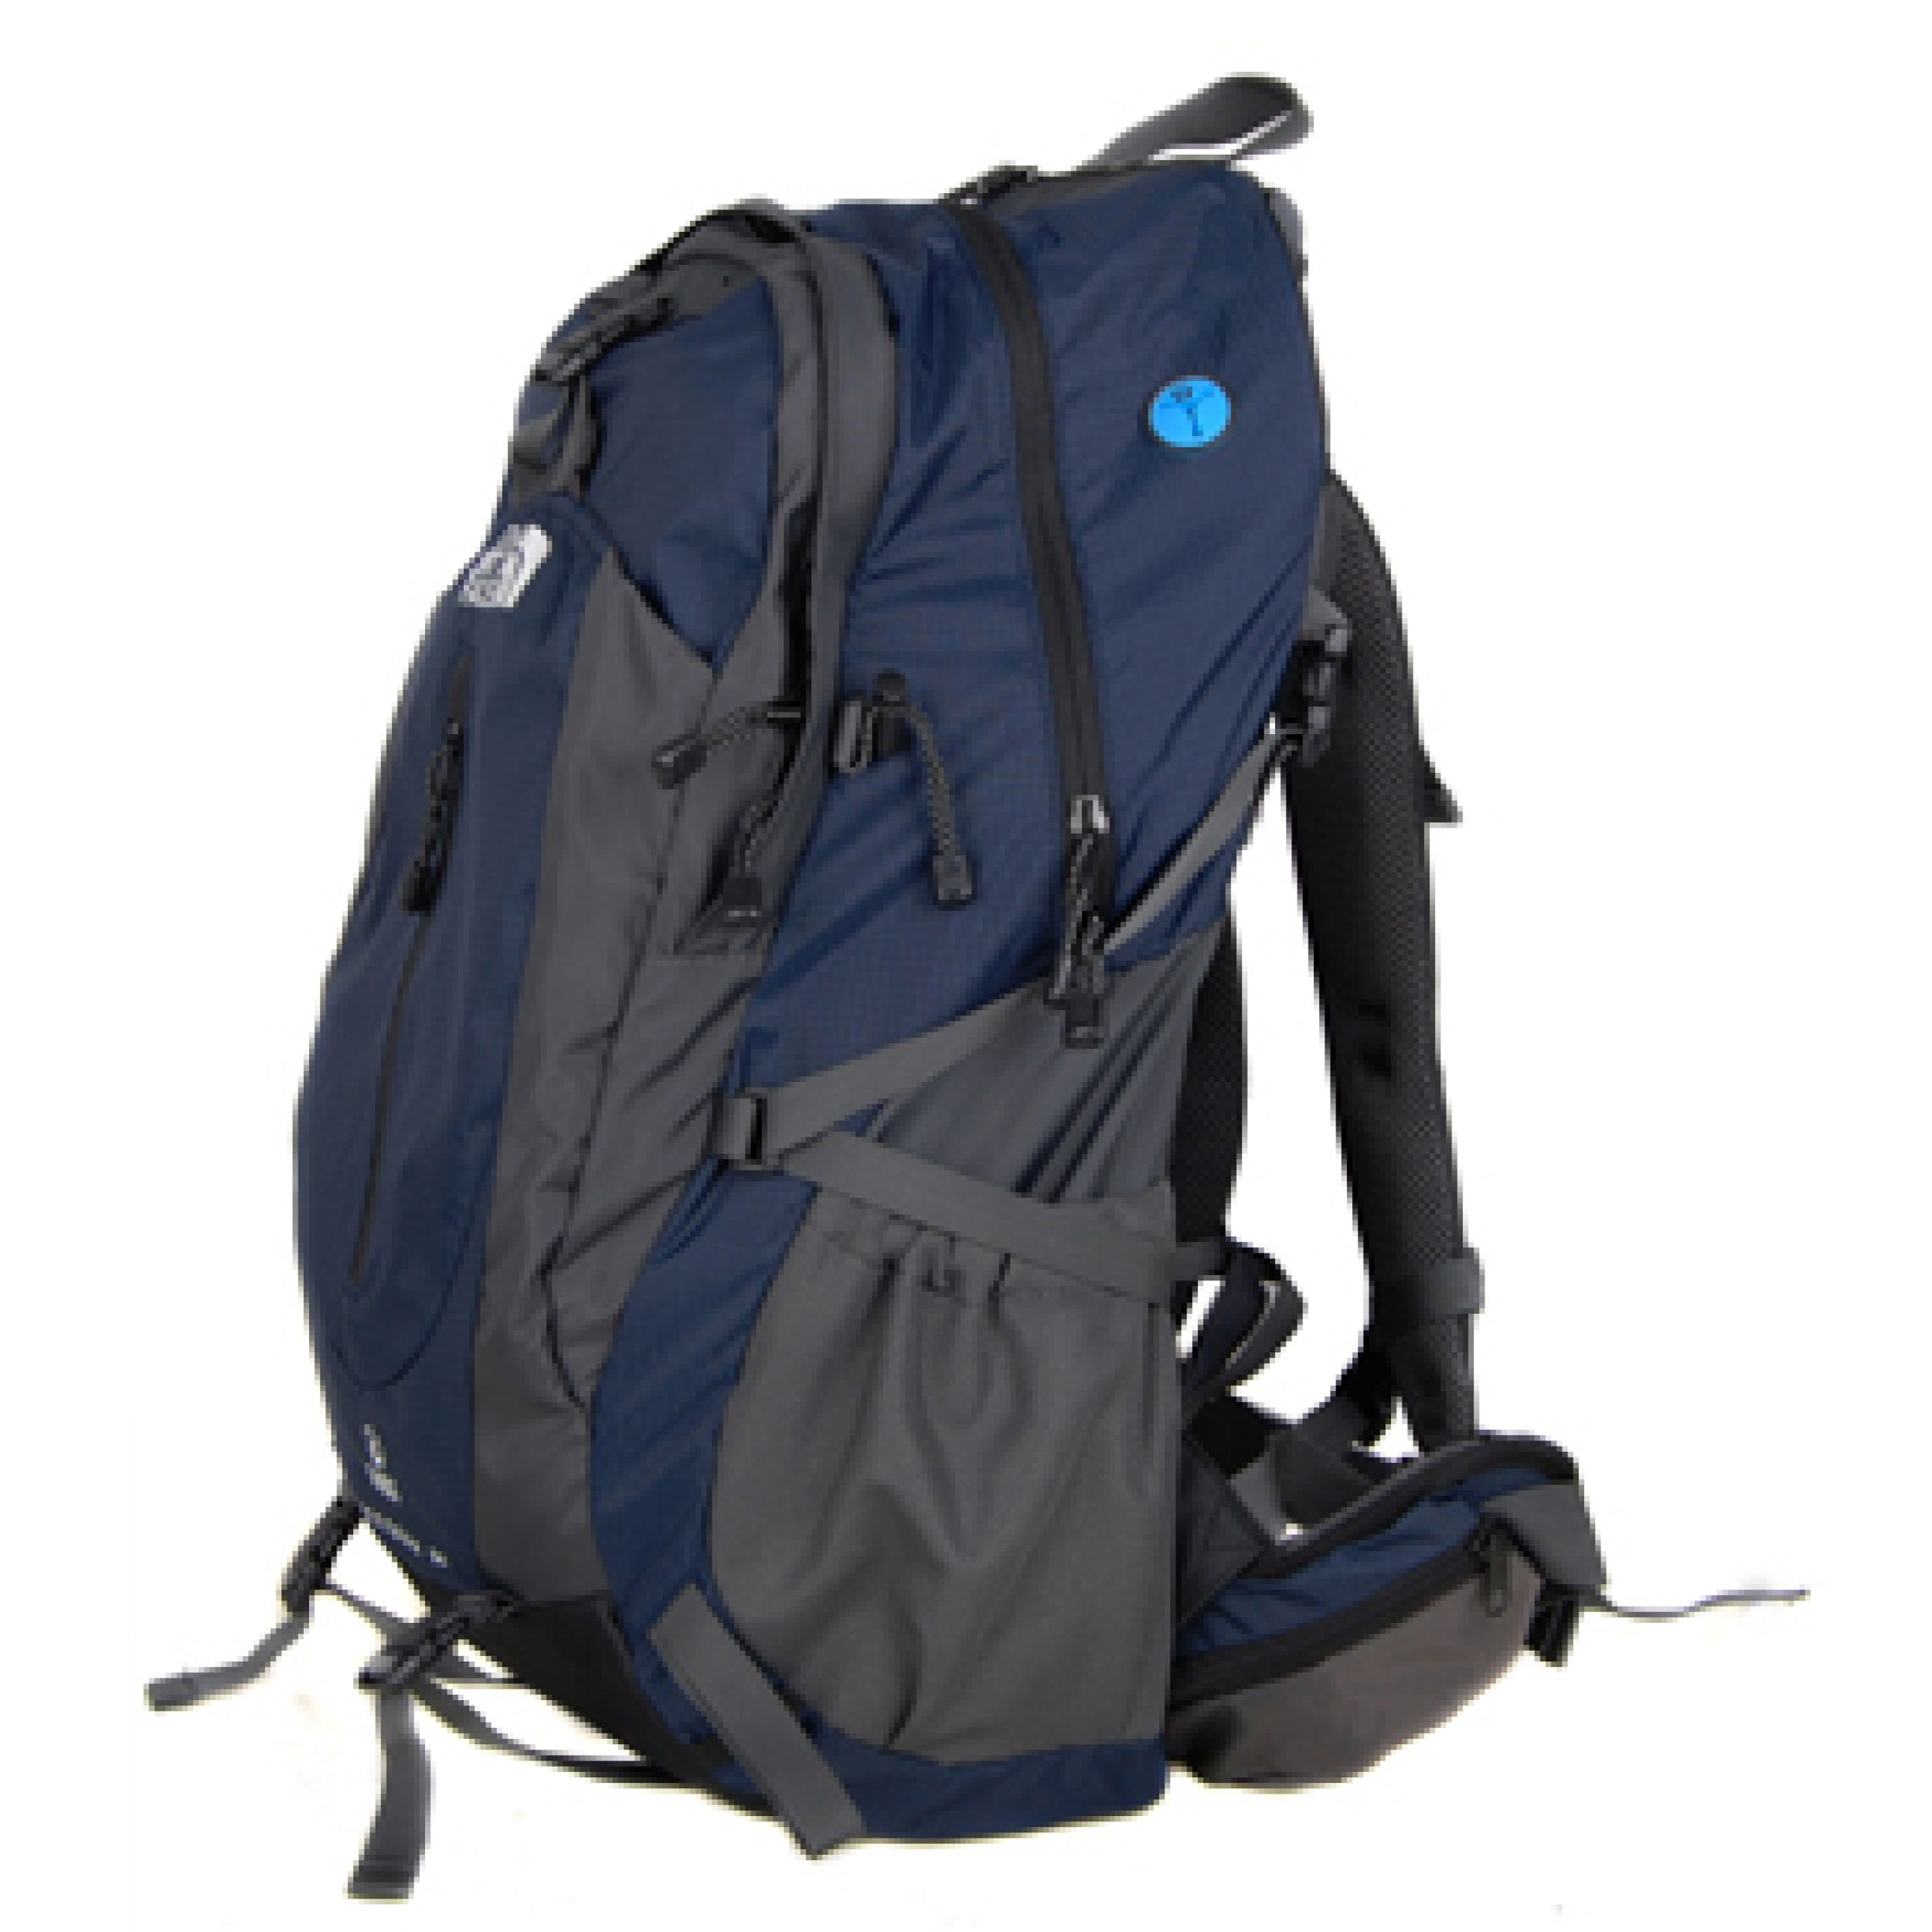 The_North_Face_Electron_40_Backpack__43_02_LRG.jpg